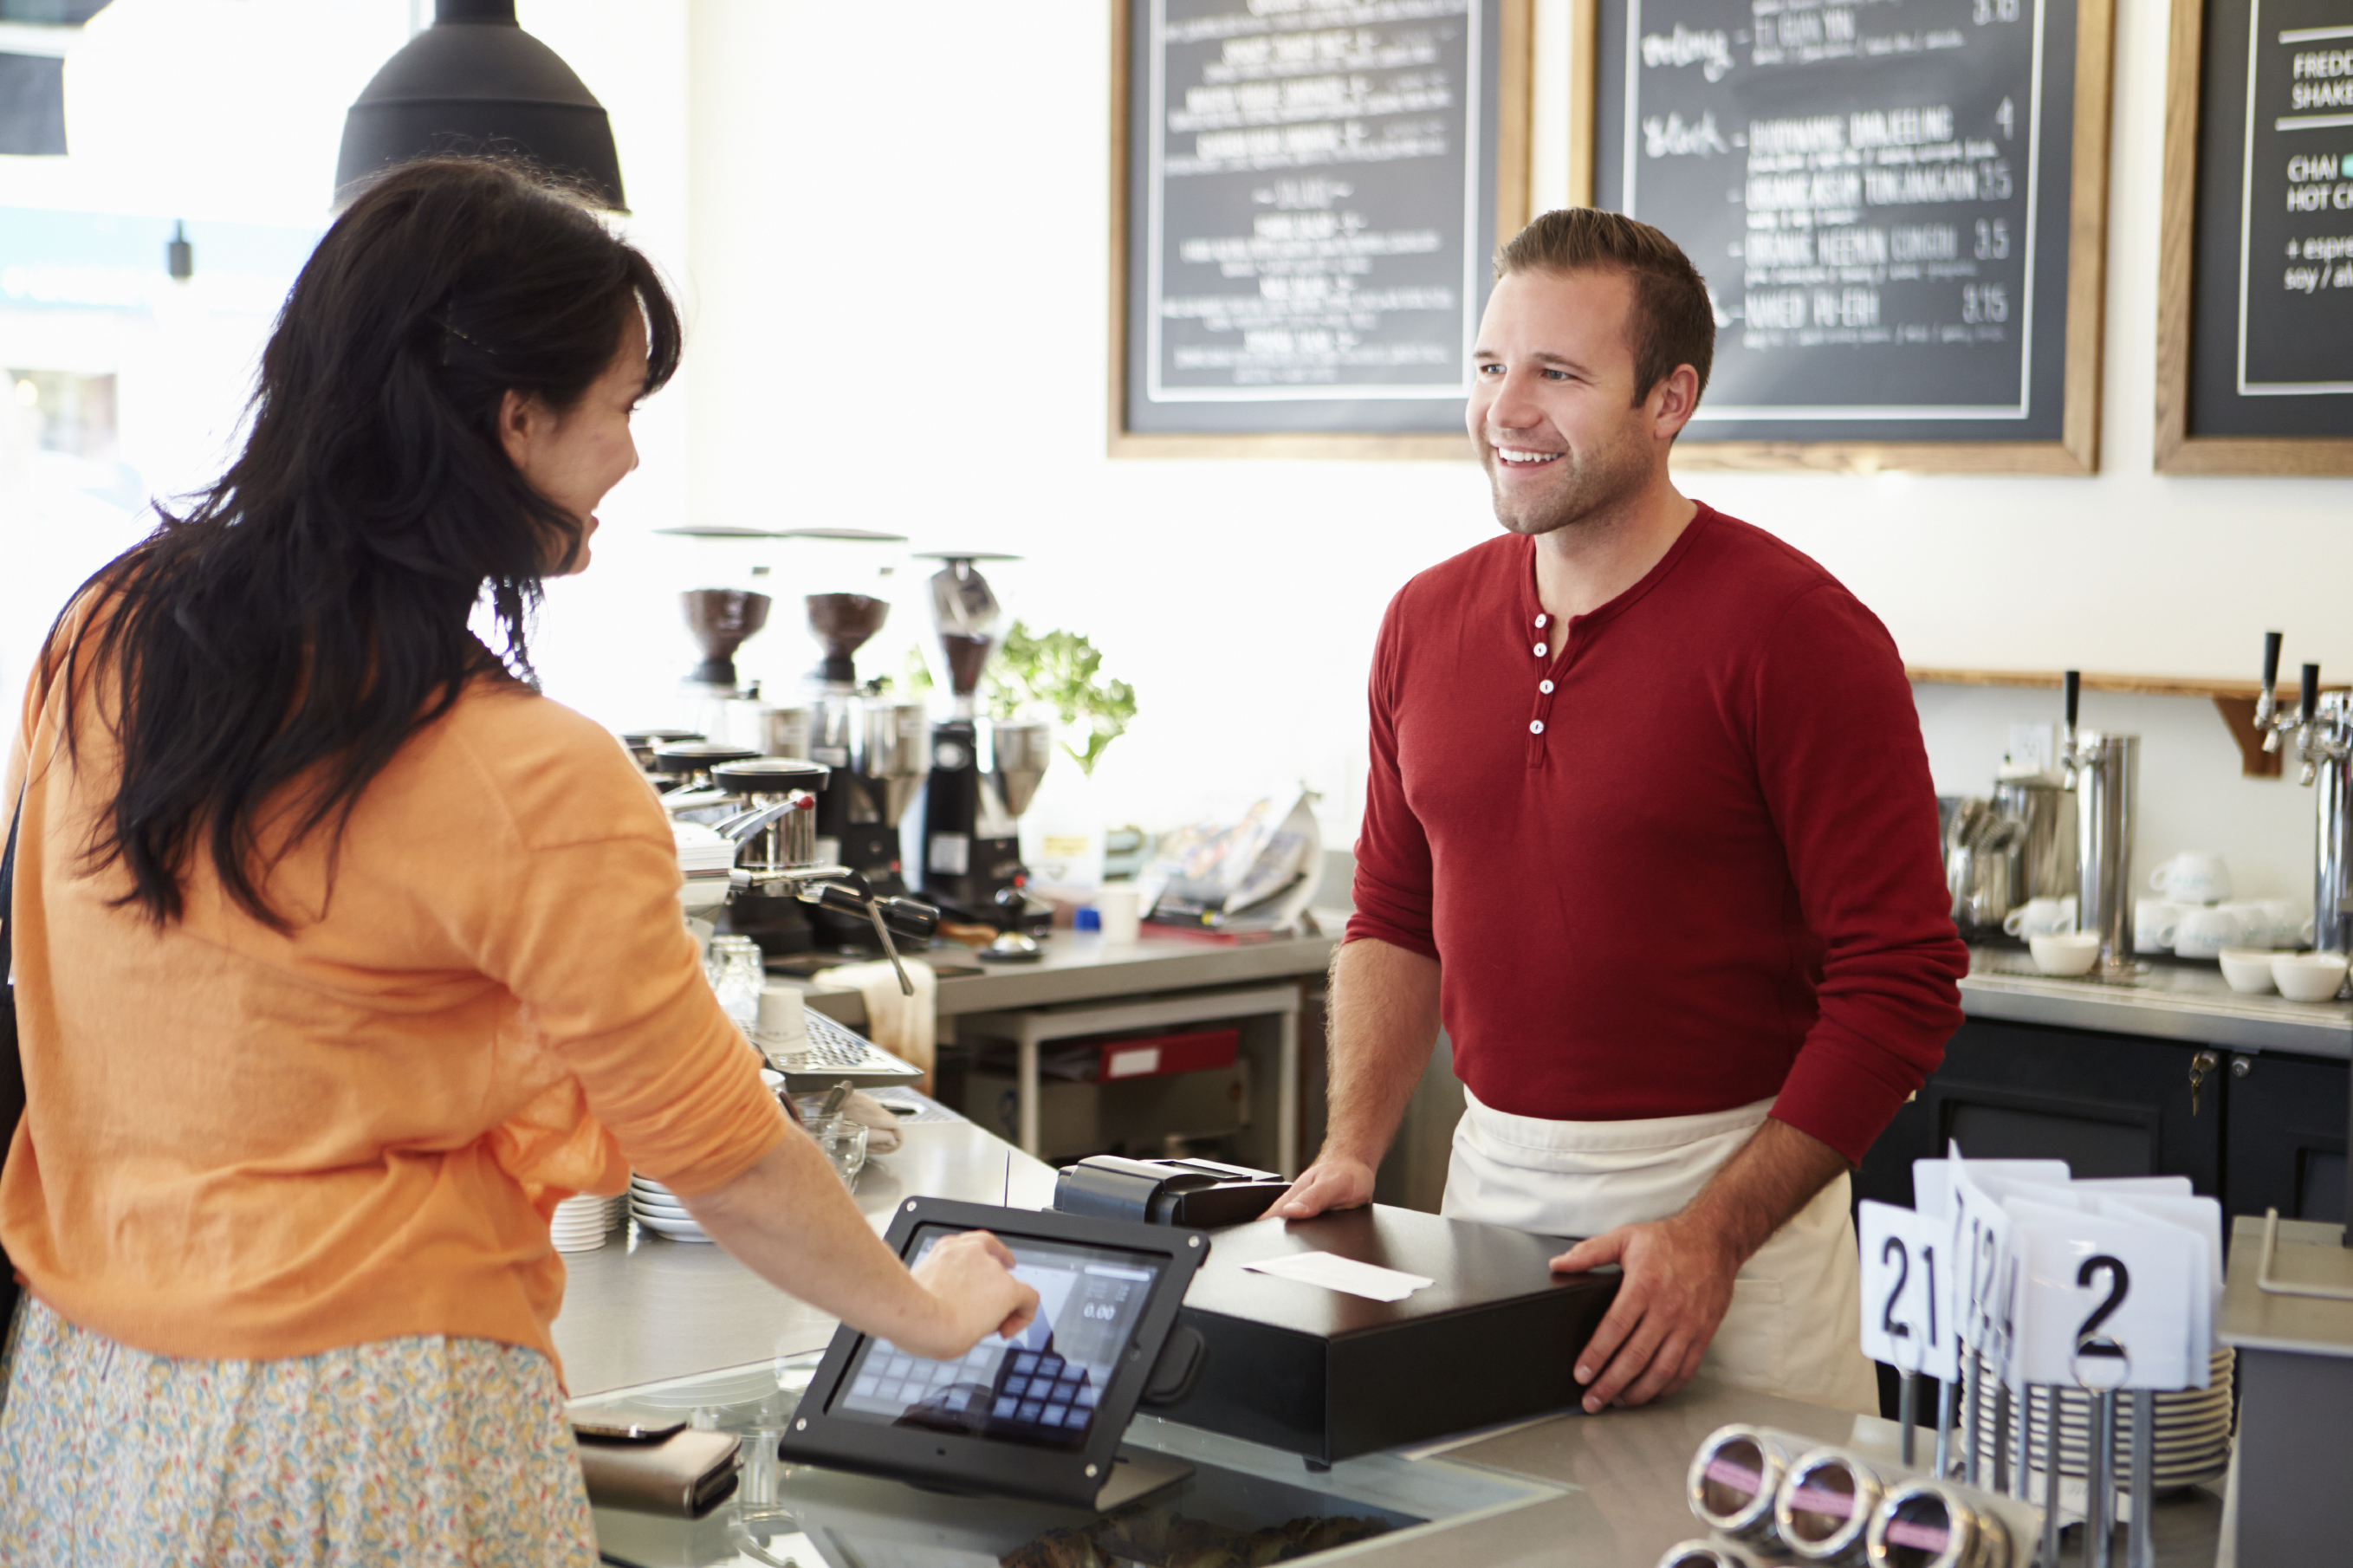 service evaluation Is Retail Experience Optimization A Priority For Your Business?